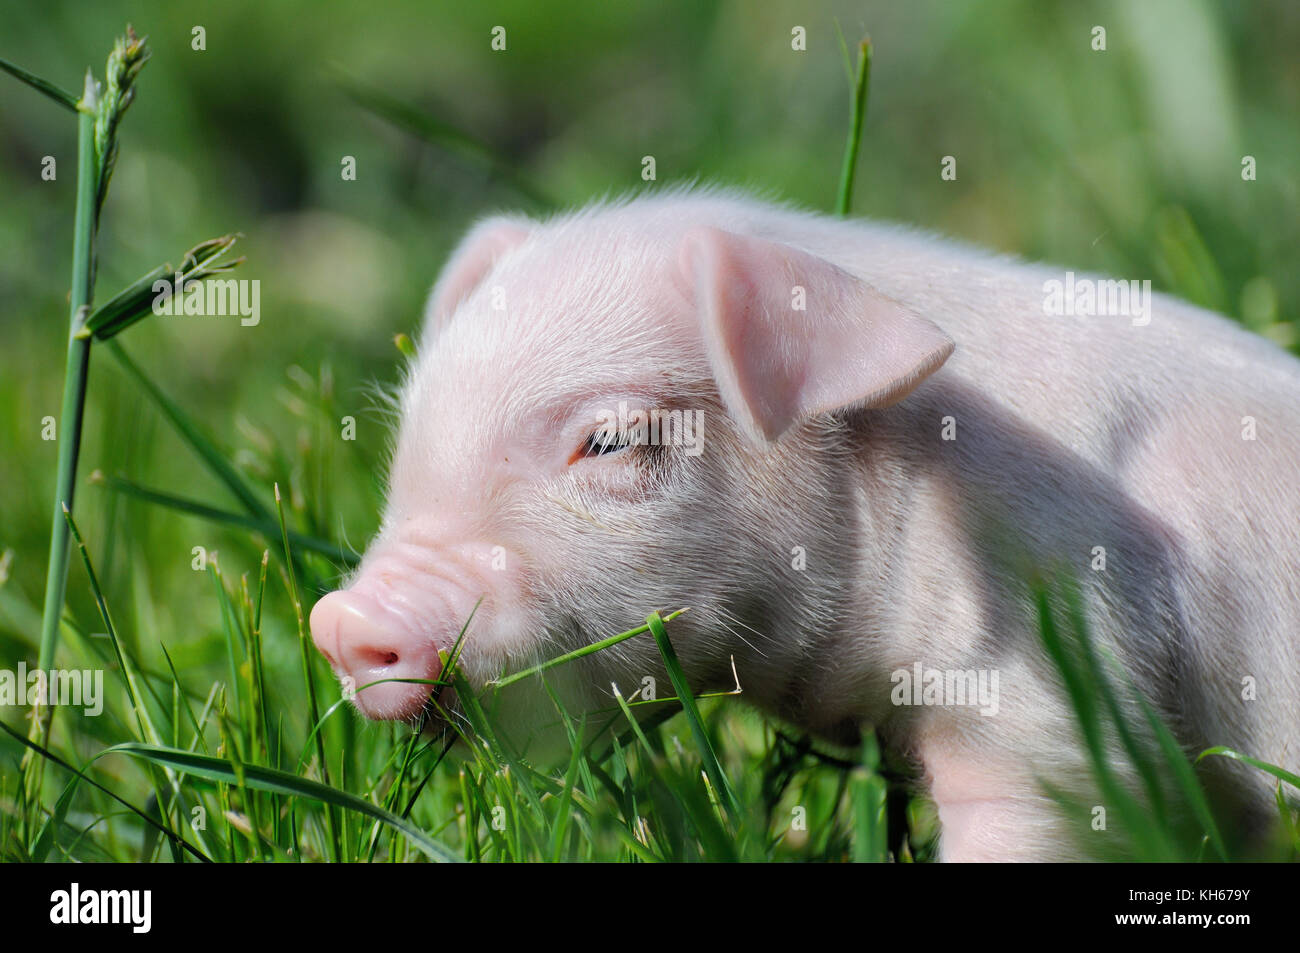 Small piglet on a green grass - Stock Image